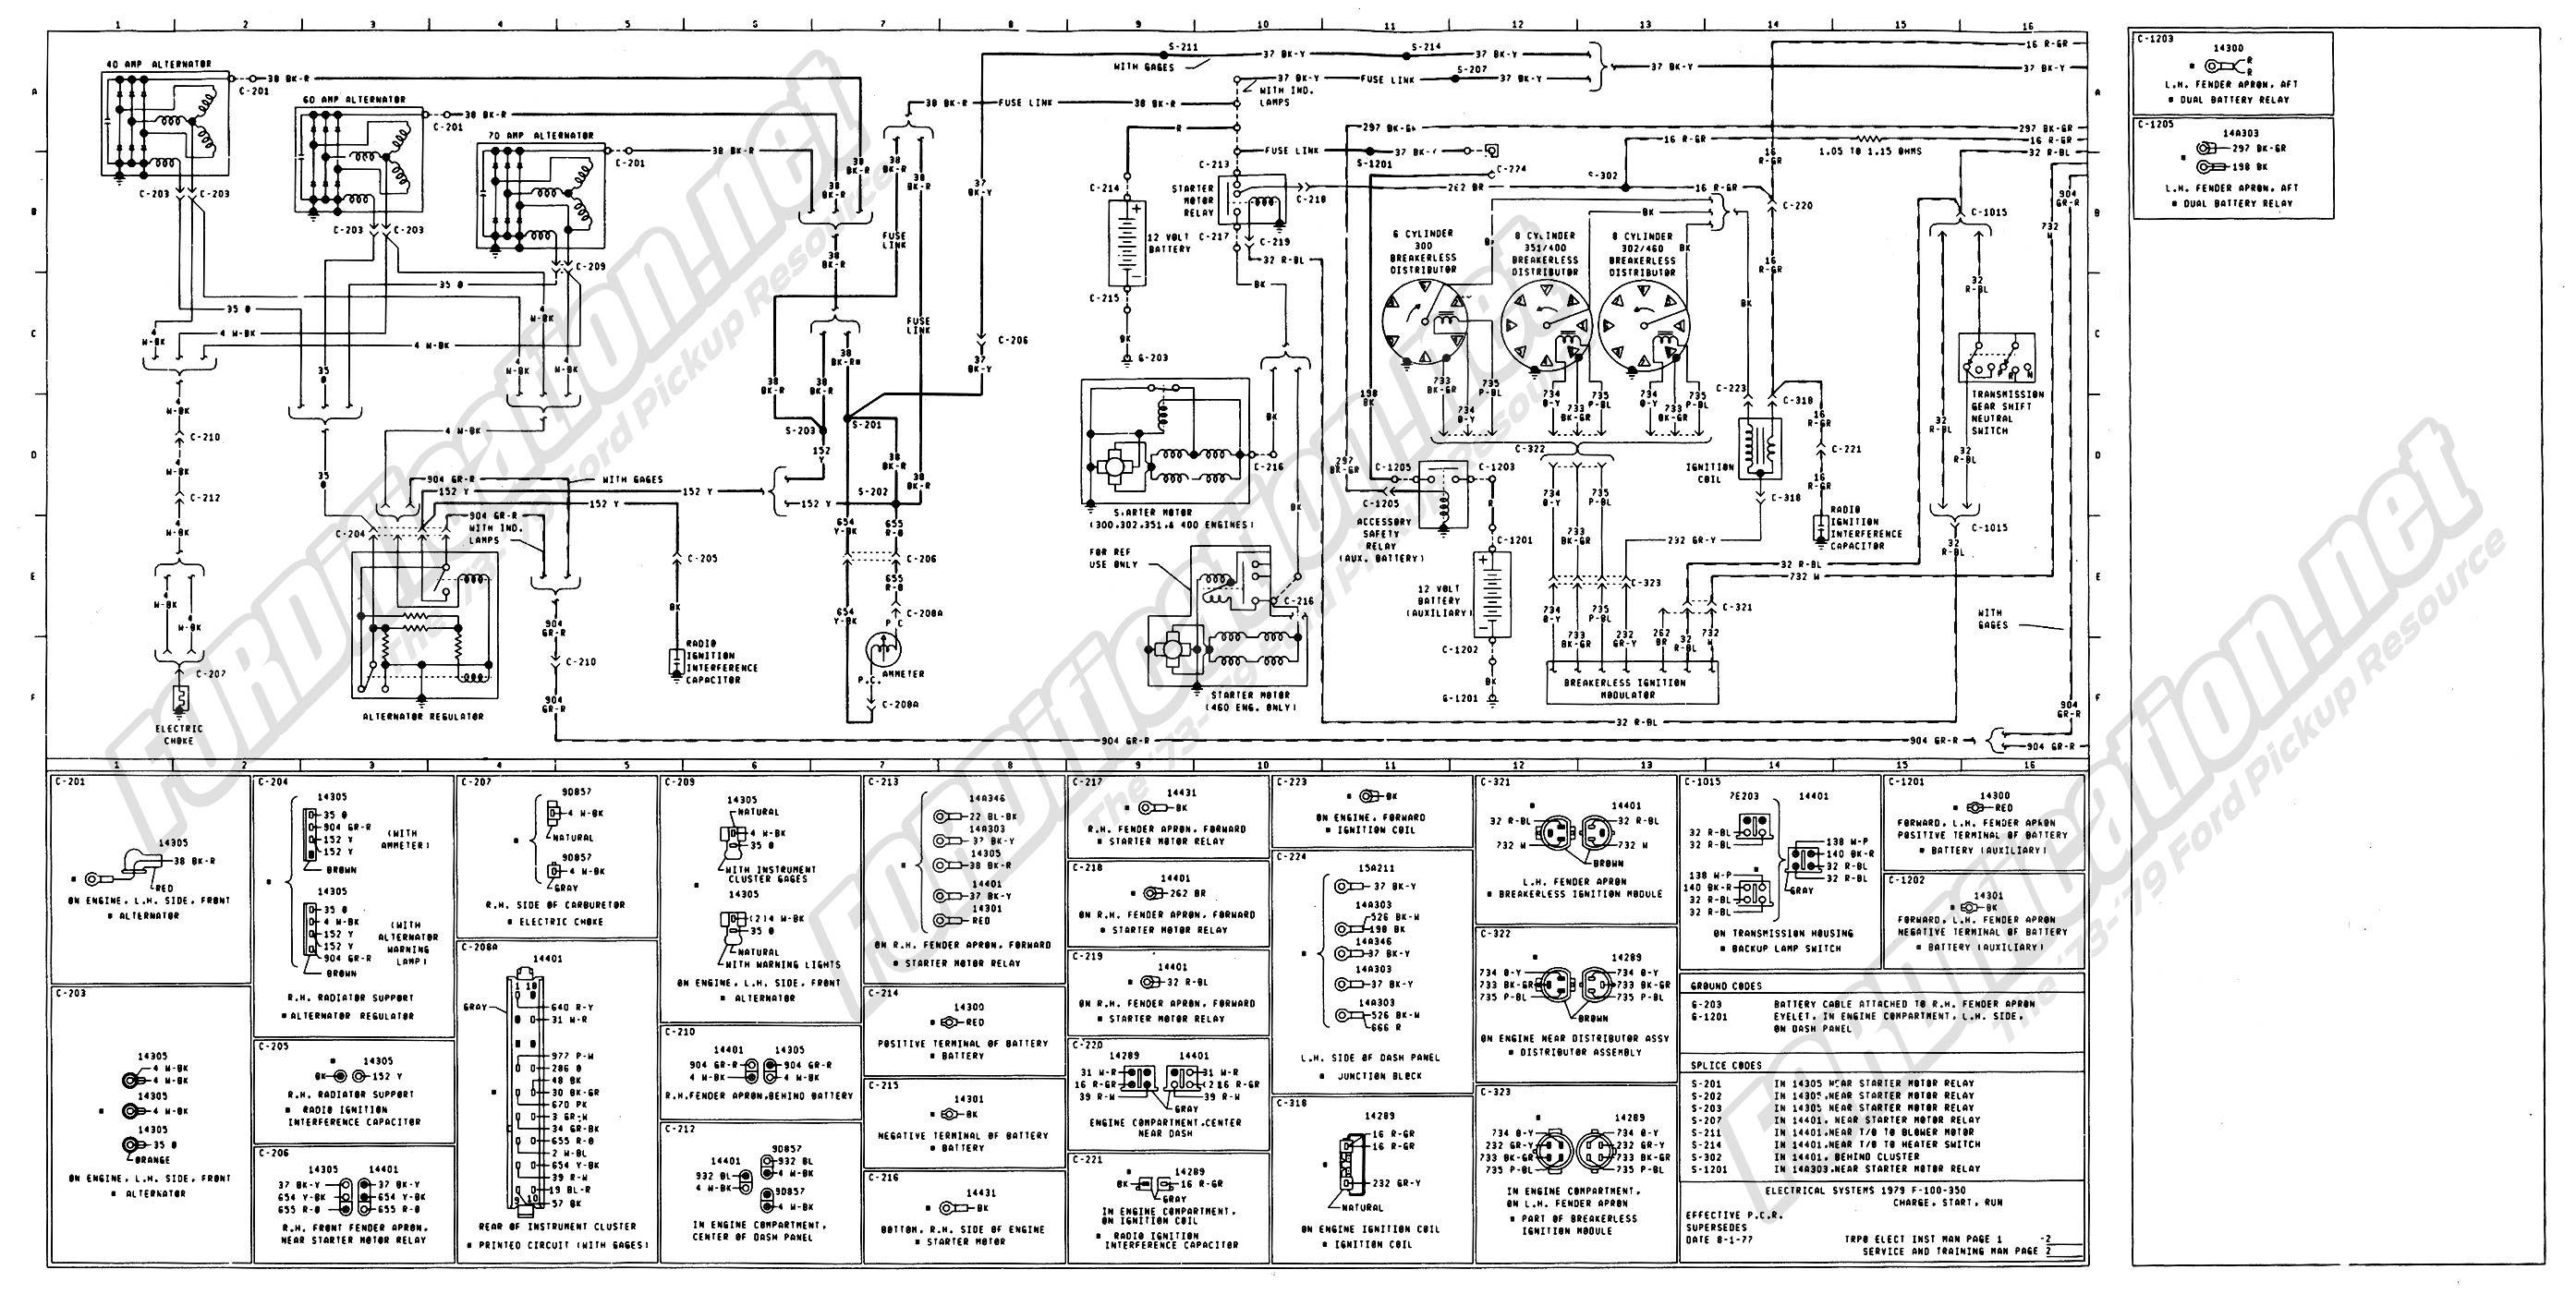 Shasta Rv Wiring Diagram 1988 Free Download Fleetwood Southwind Motorhome 1977 Ford E350 Schematic Example Electrical